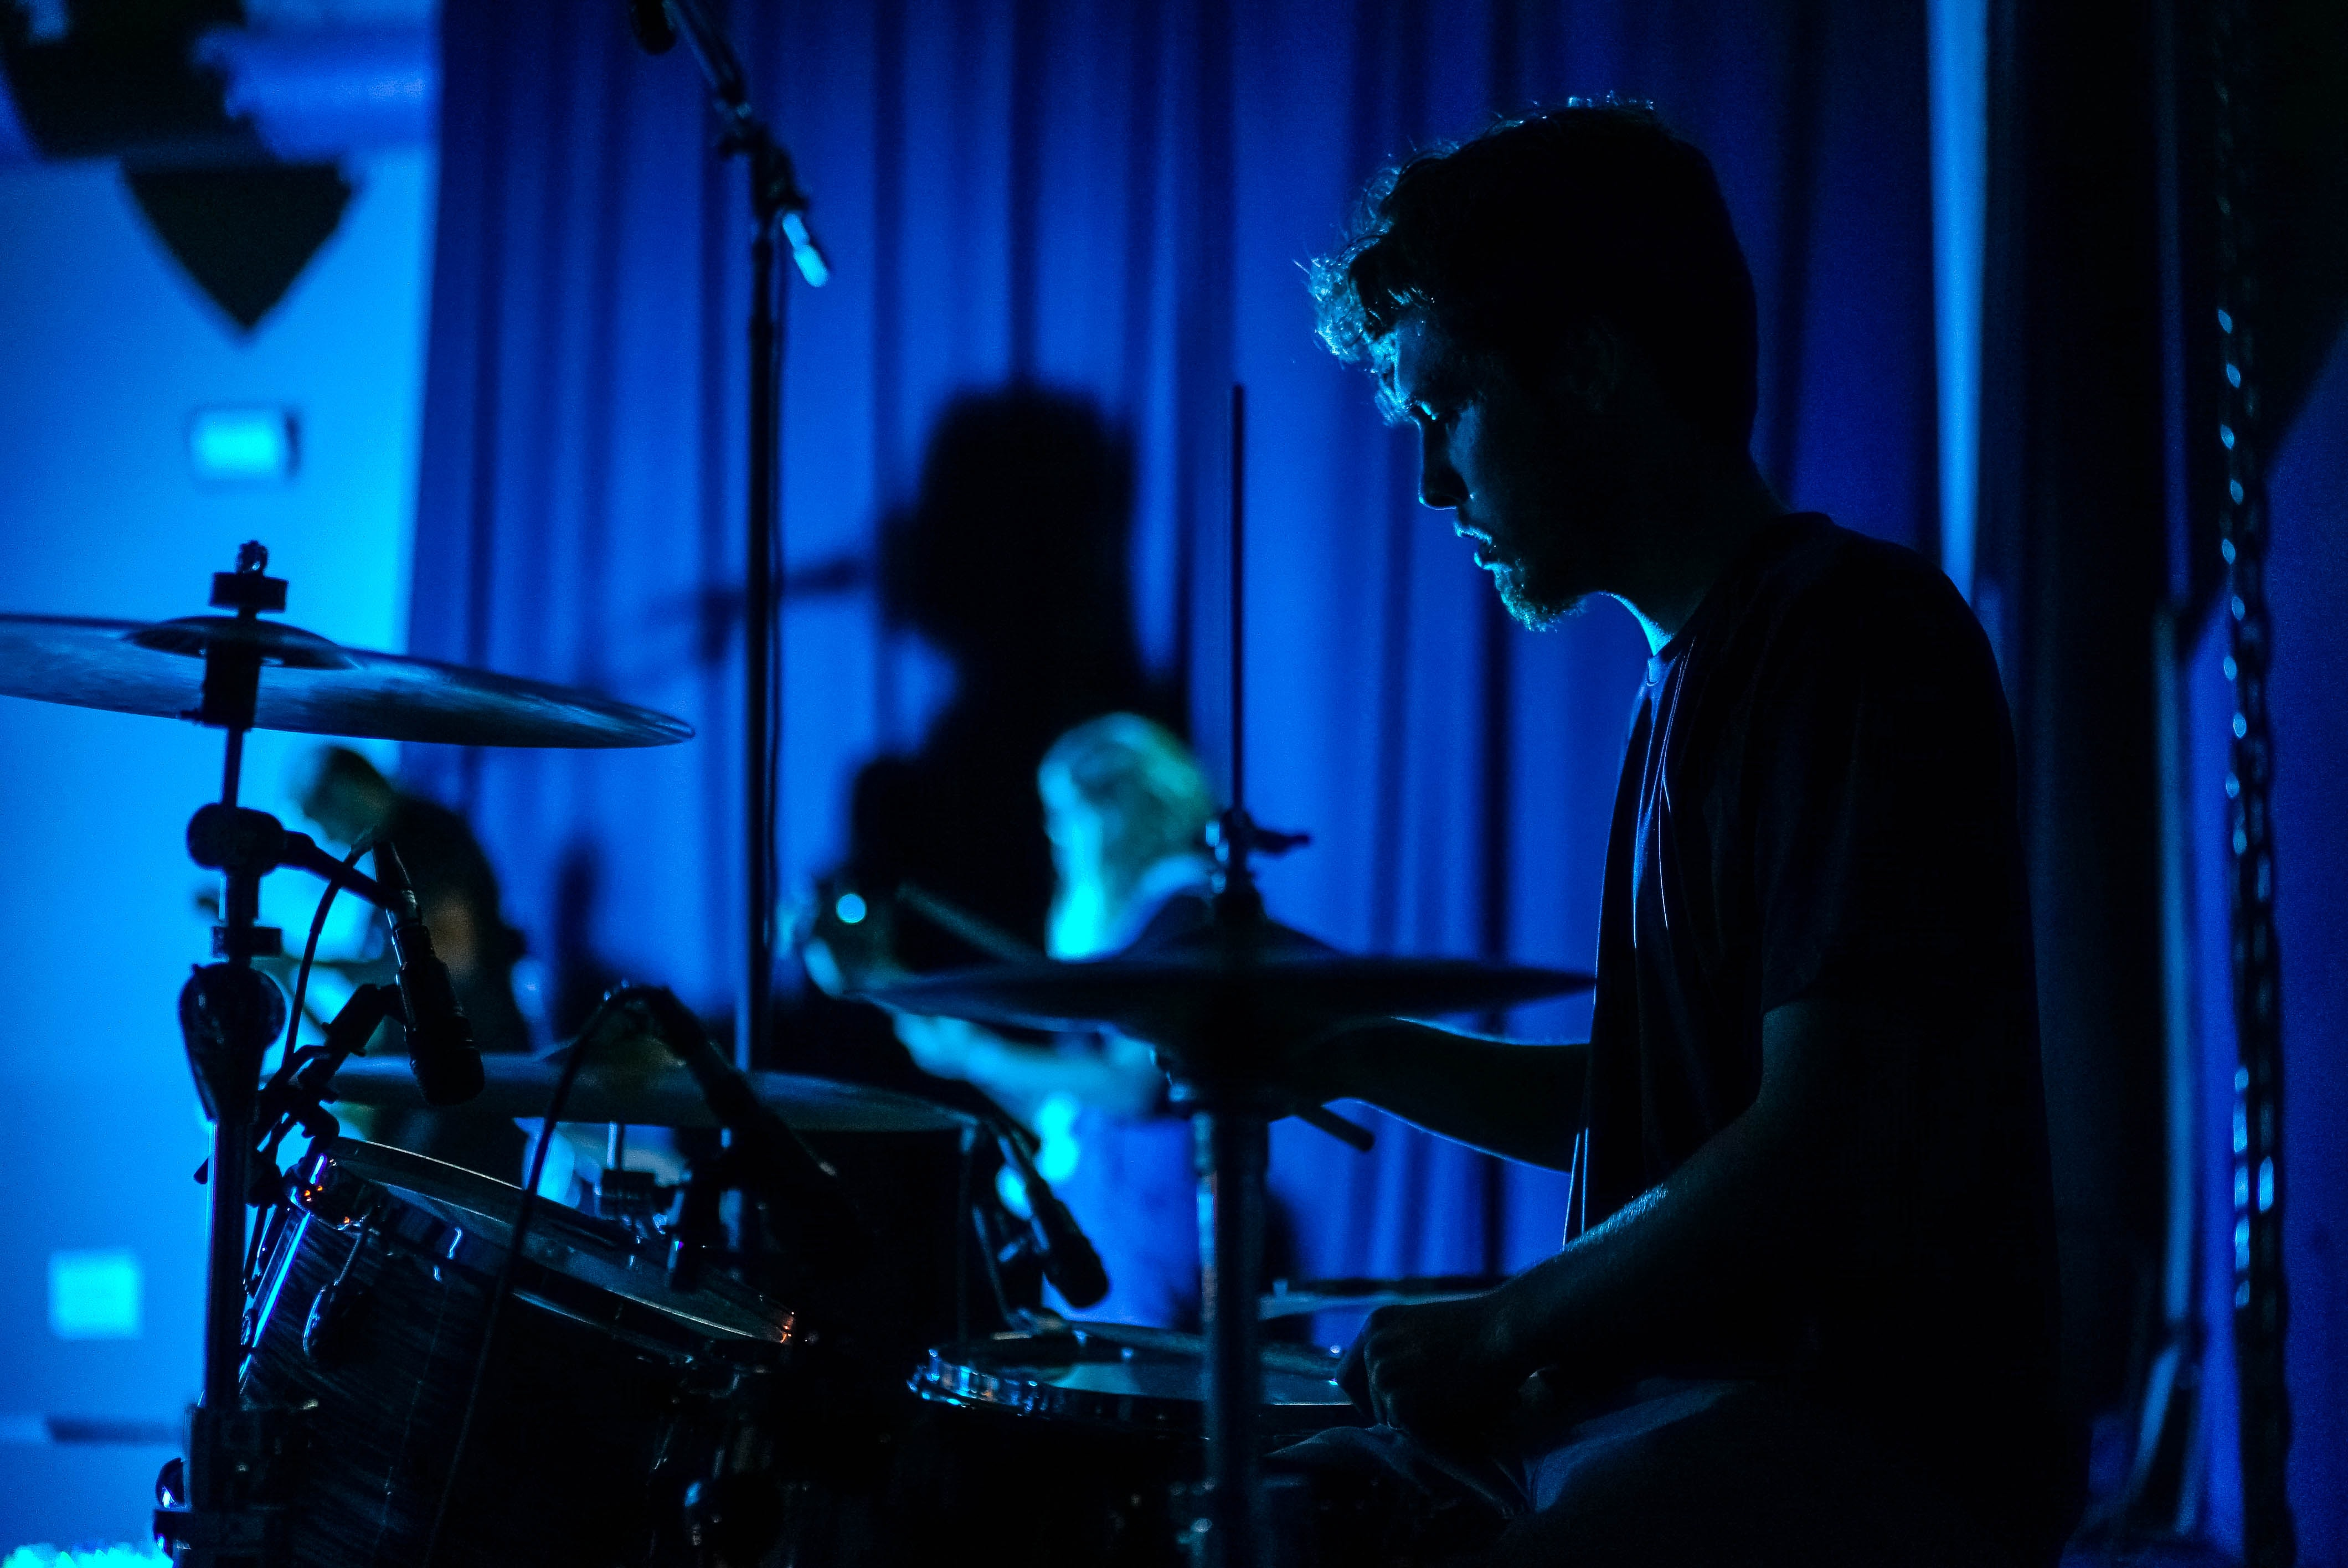 A man with a beard playing the drums in a room lit with a blue light